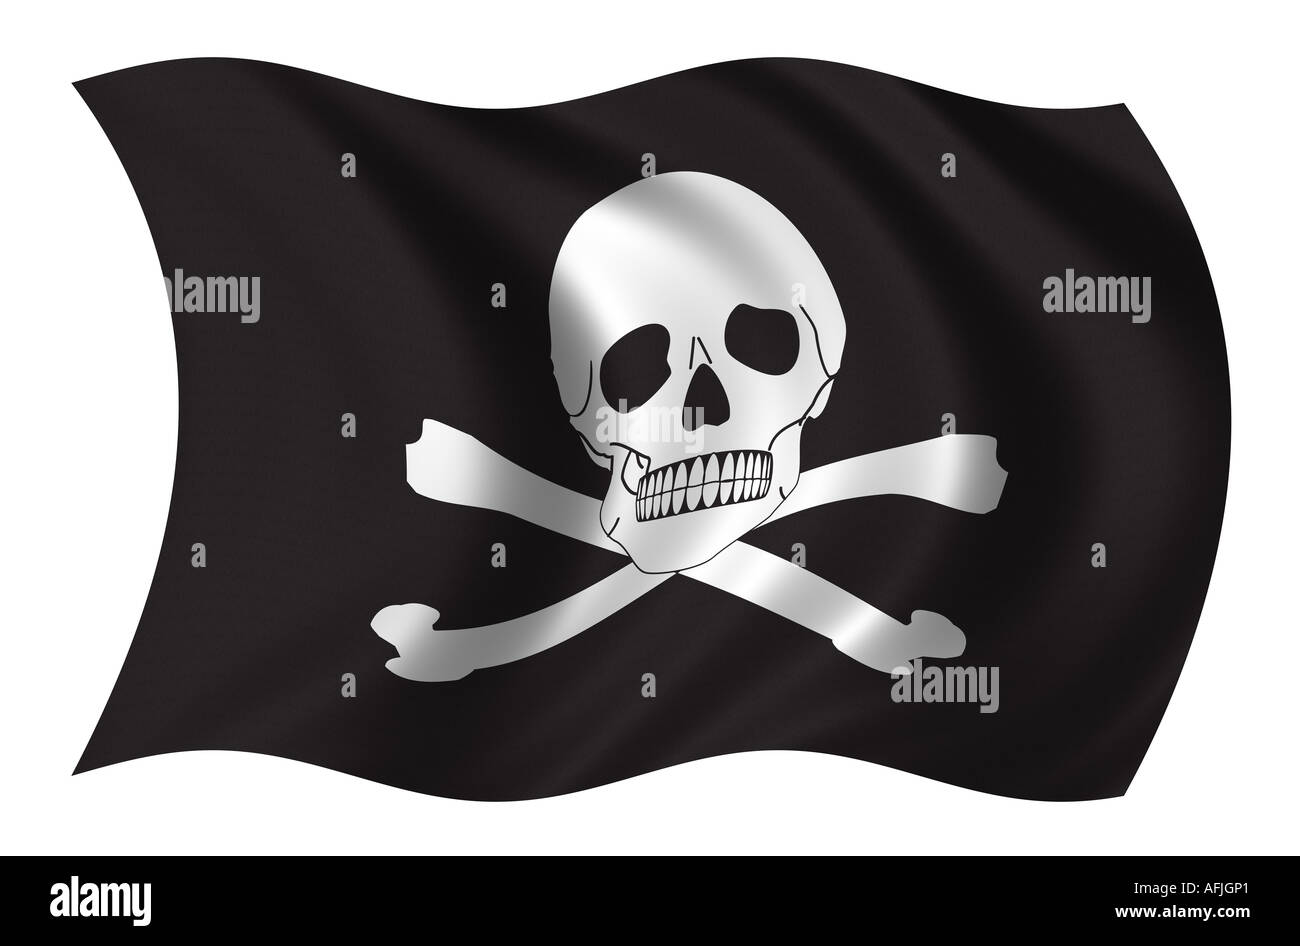 Pirates flag waving in the wind - Stock Image